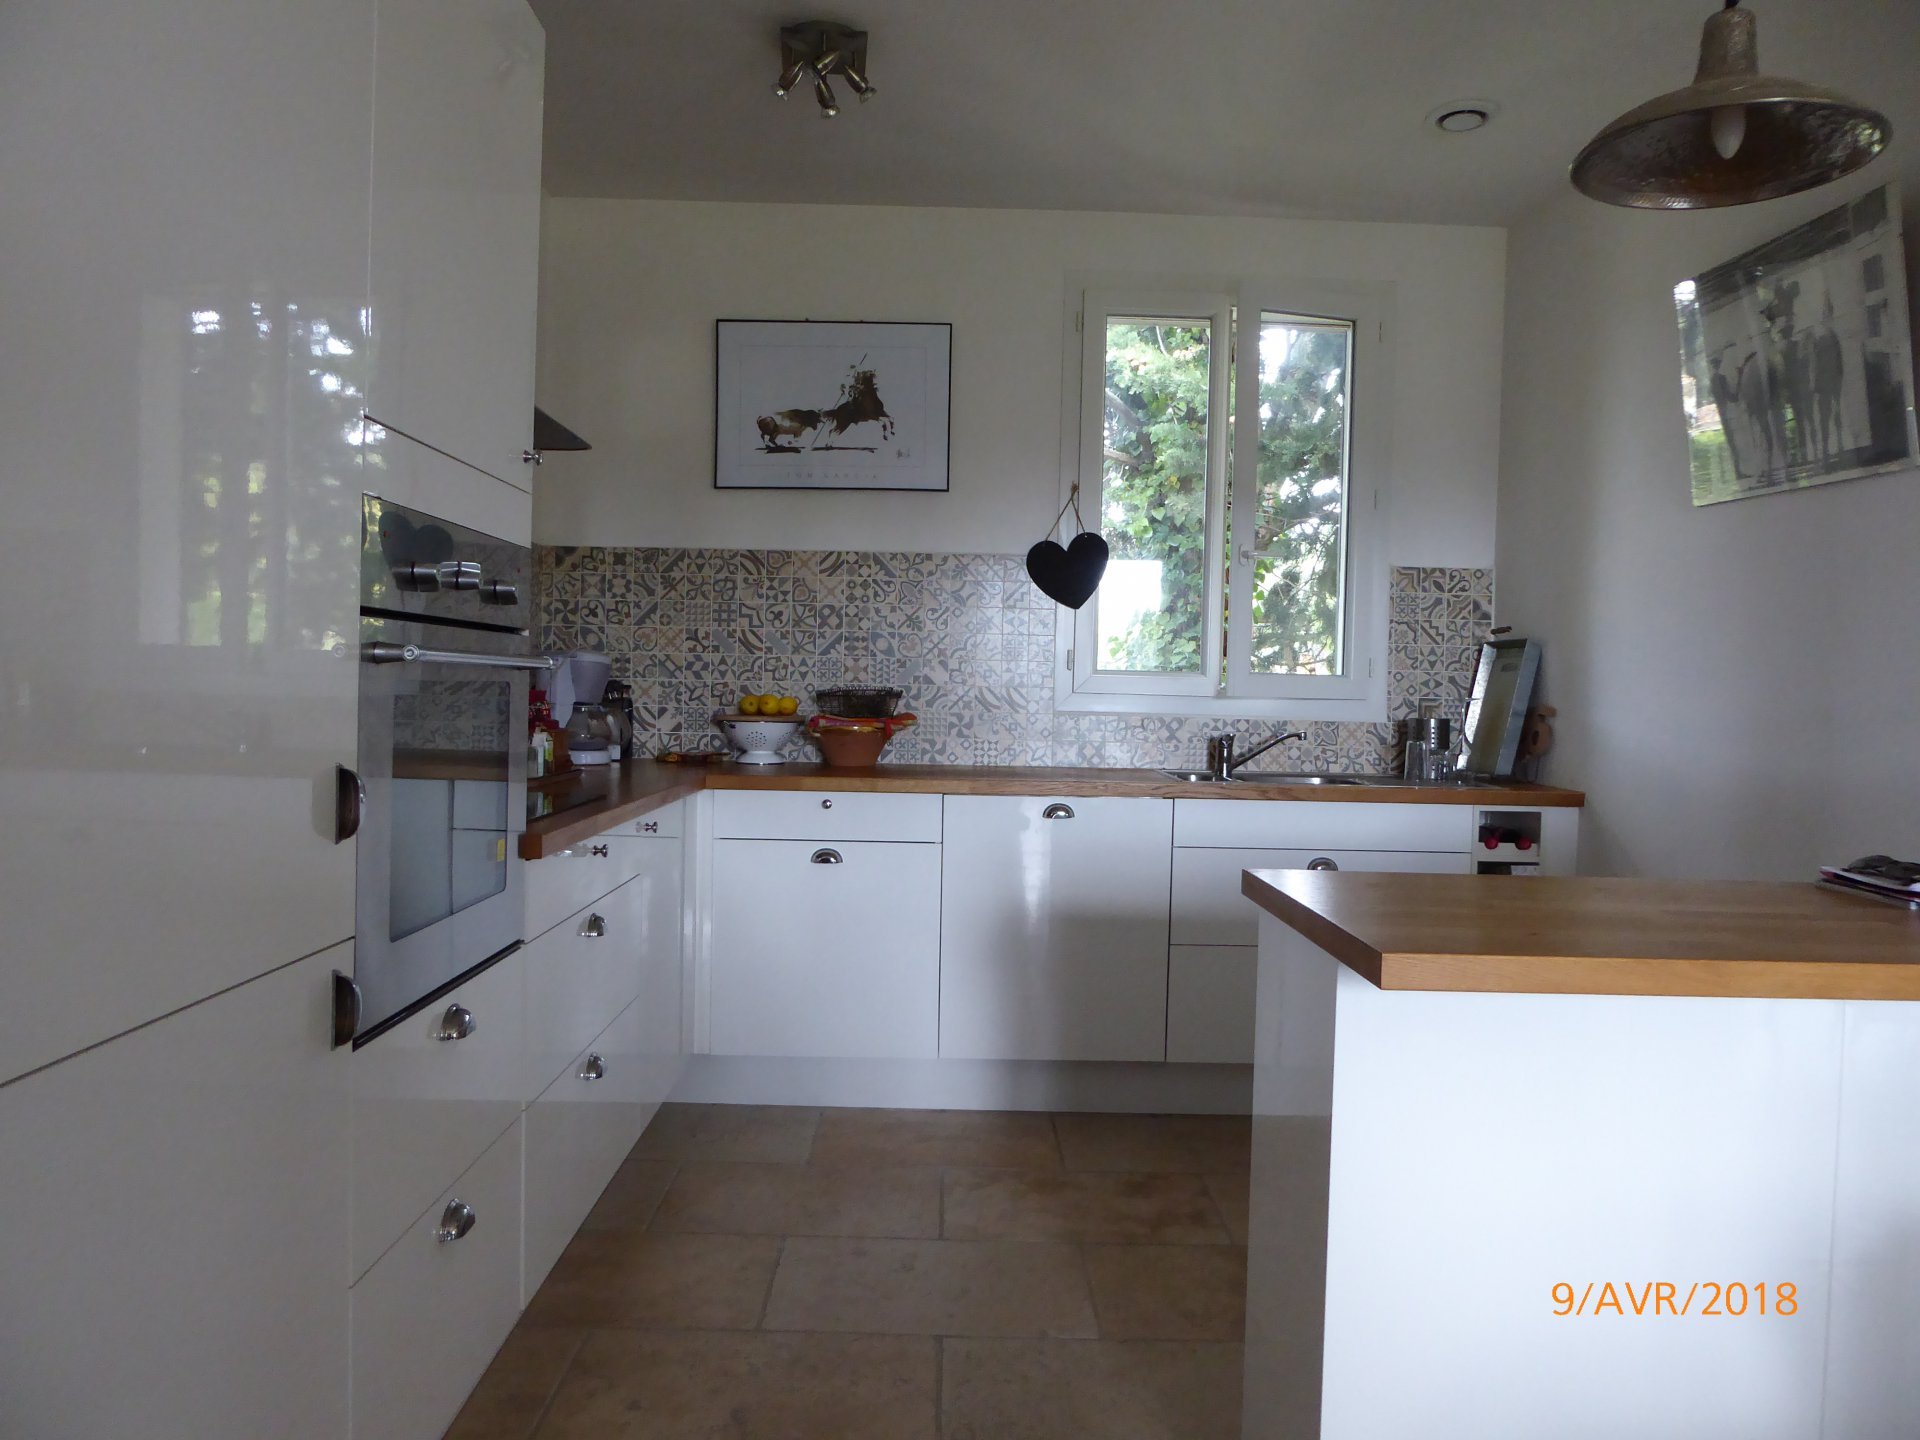 Kitchen, natural light, stainless steel, tile